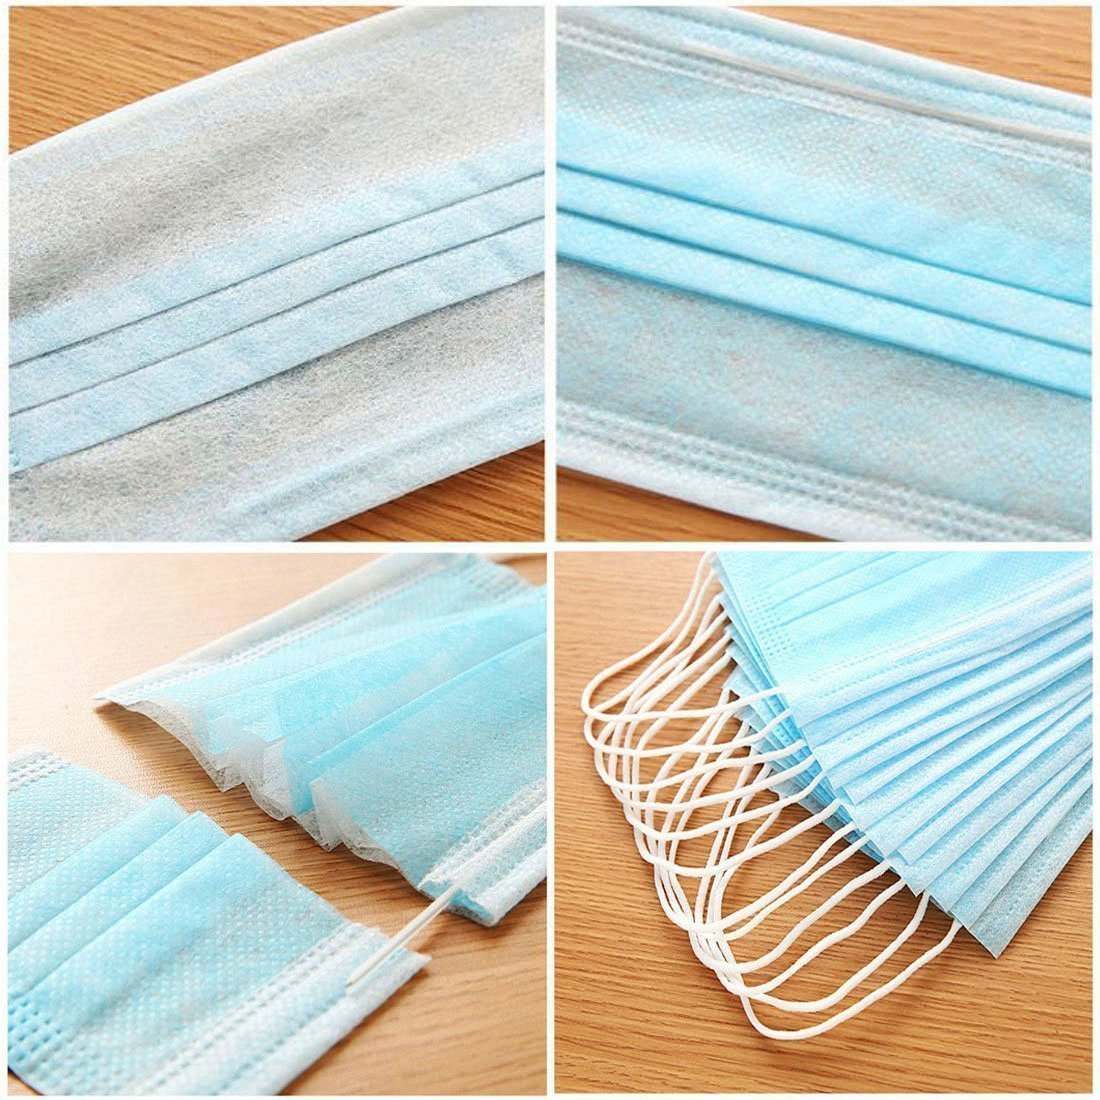 Face Mask Disposable 2 Ply With Elastic (Pkt of 100 pcs)